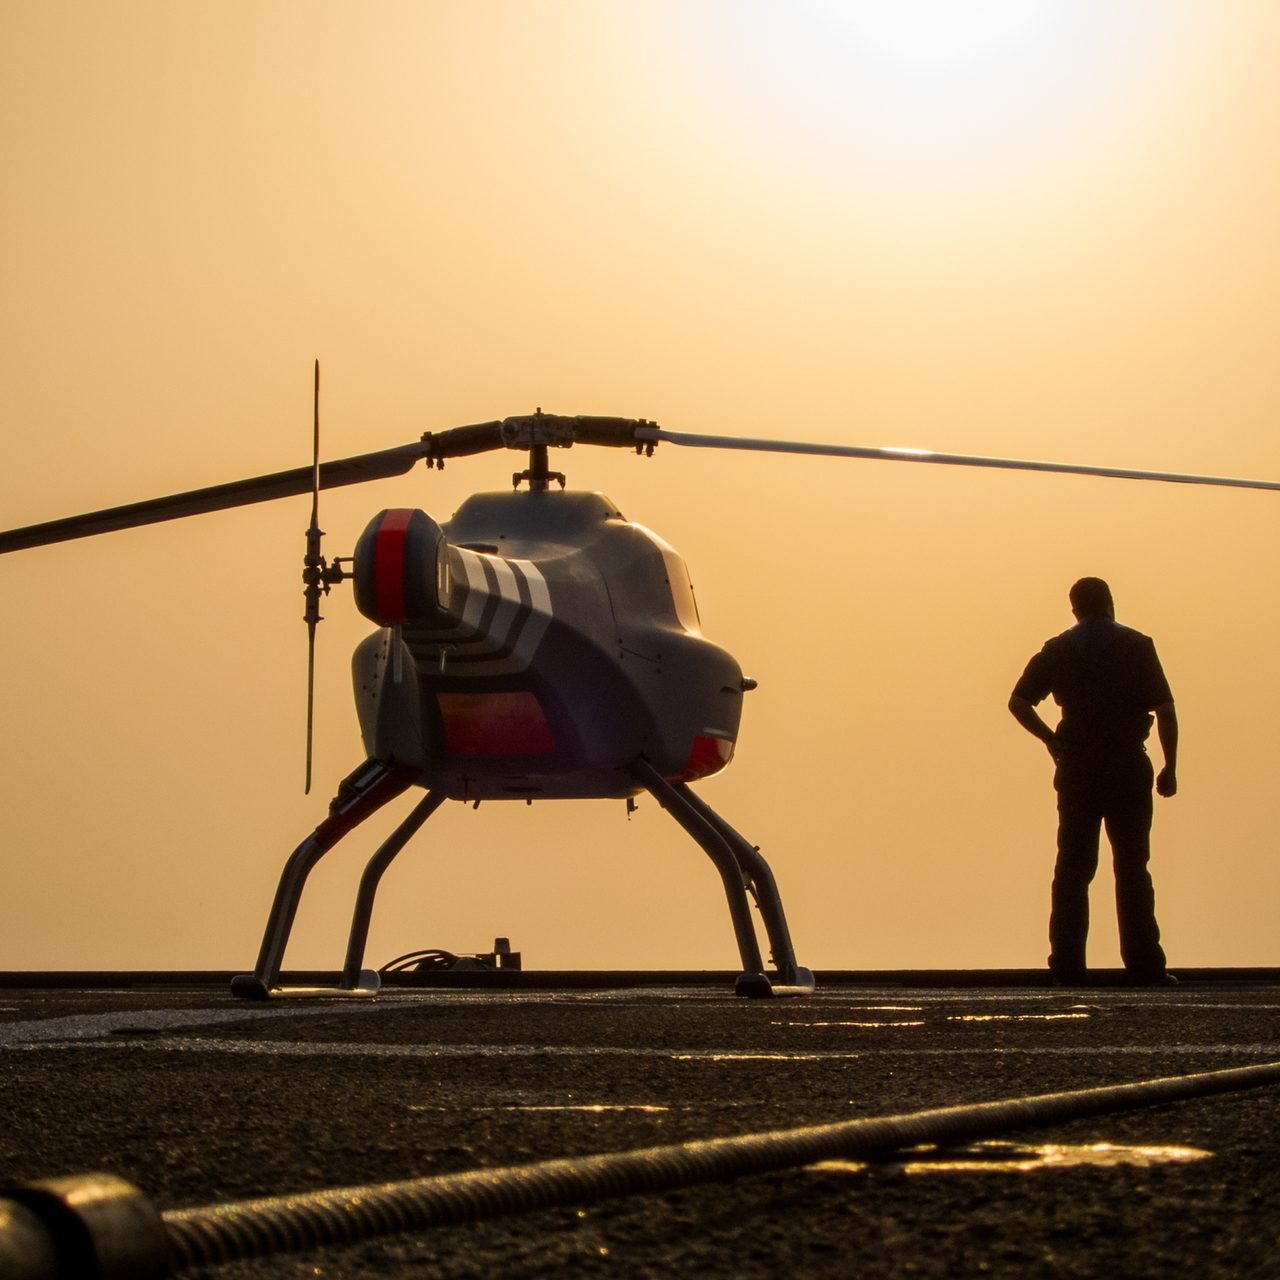 Helicopter rotor, Sky, Rotorcraft, Vehicle, Aircraft, Gesture, Aviation